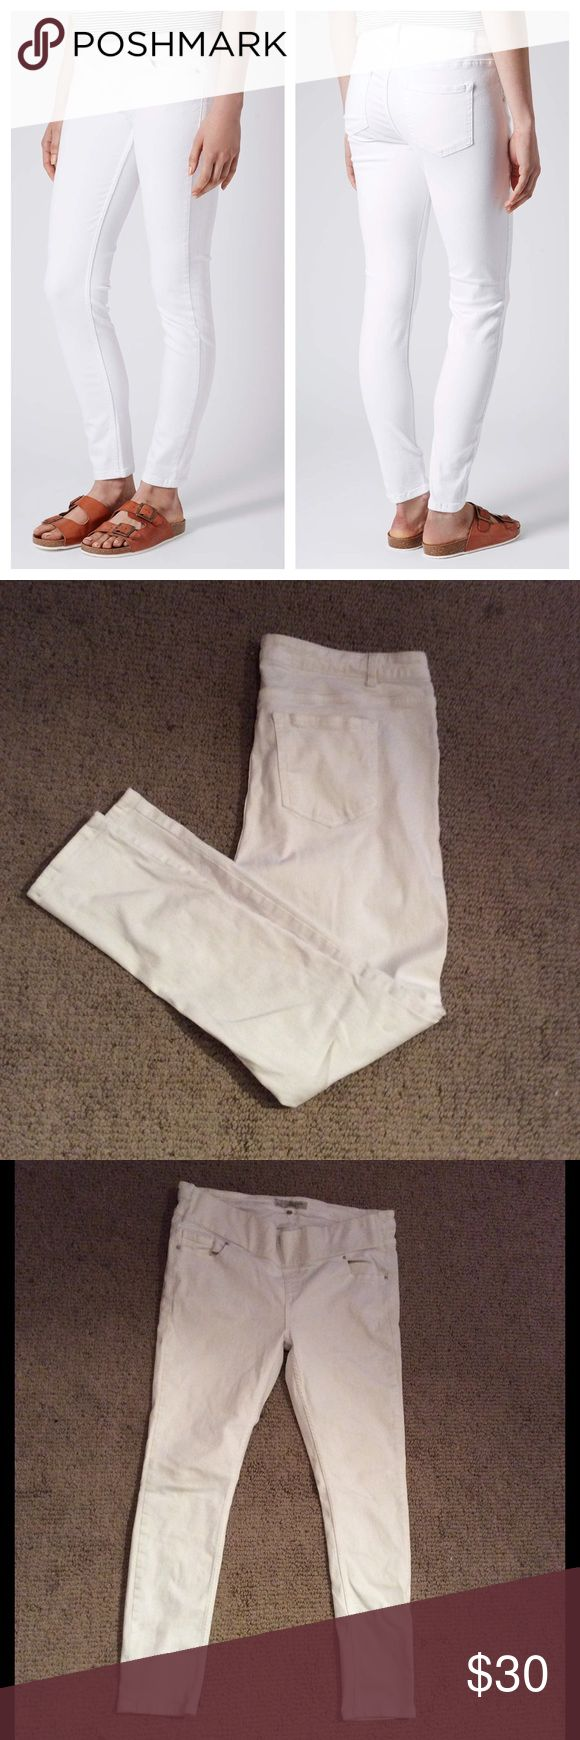 Topshop Maternity Moto White Skinny Stretch Jeans Gently pre loved condition. Across waist: 18in. Inseam: 27in. Outerseam: 38in. Foot opening: 5in Topshop MATERNITY Jeans Skinny